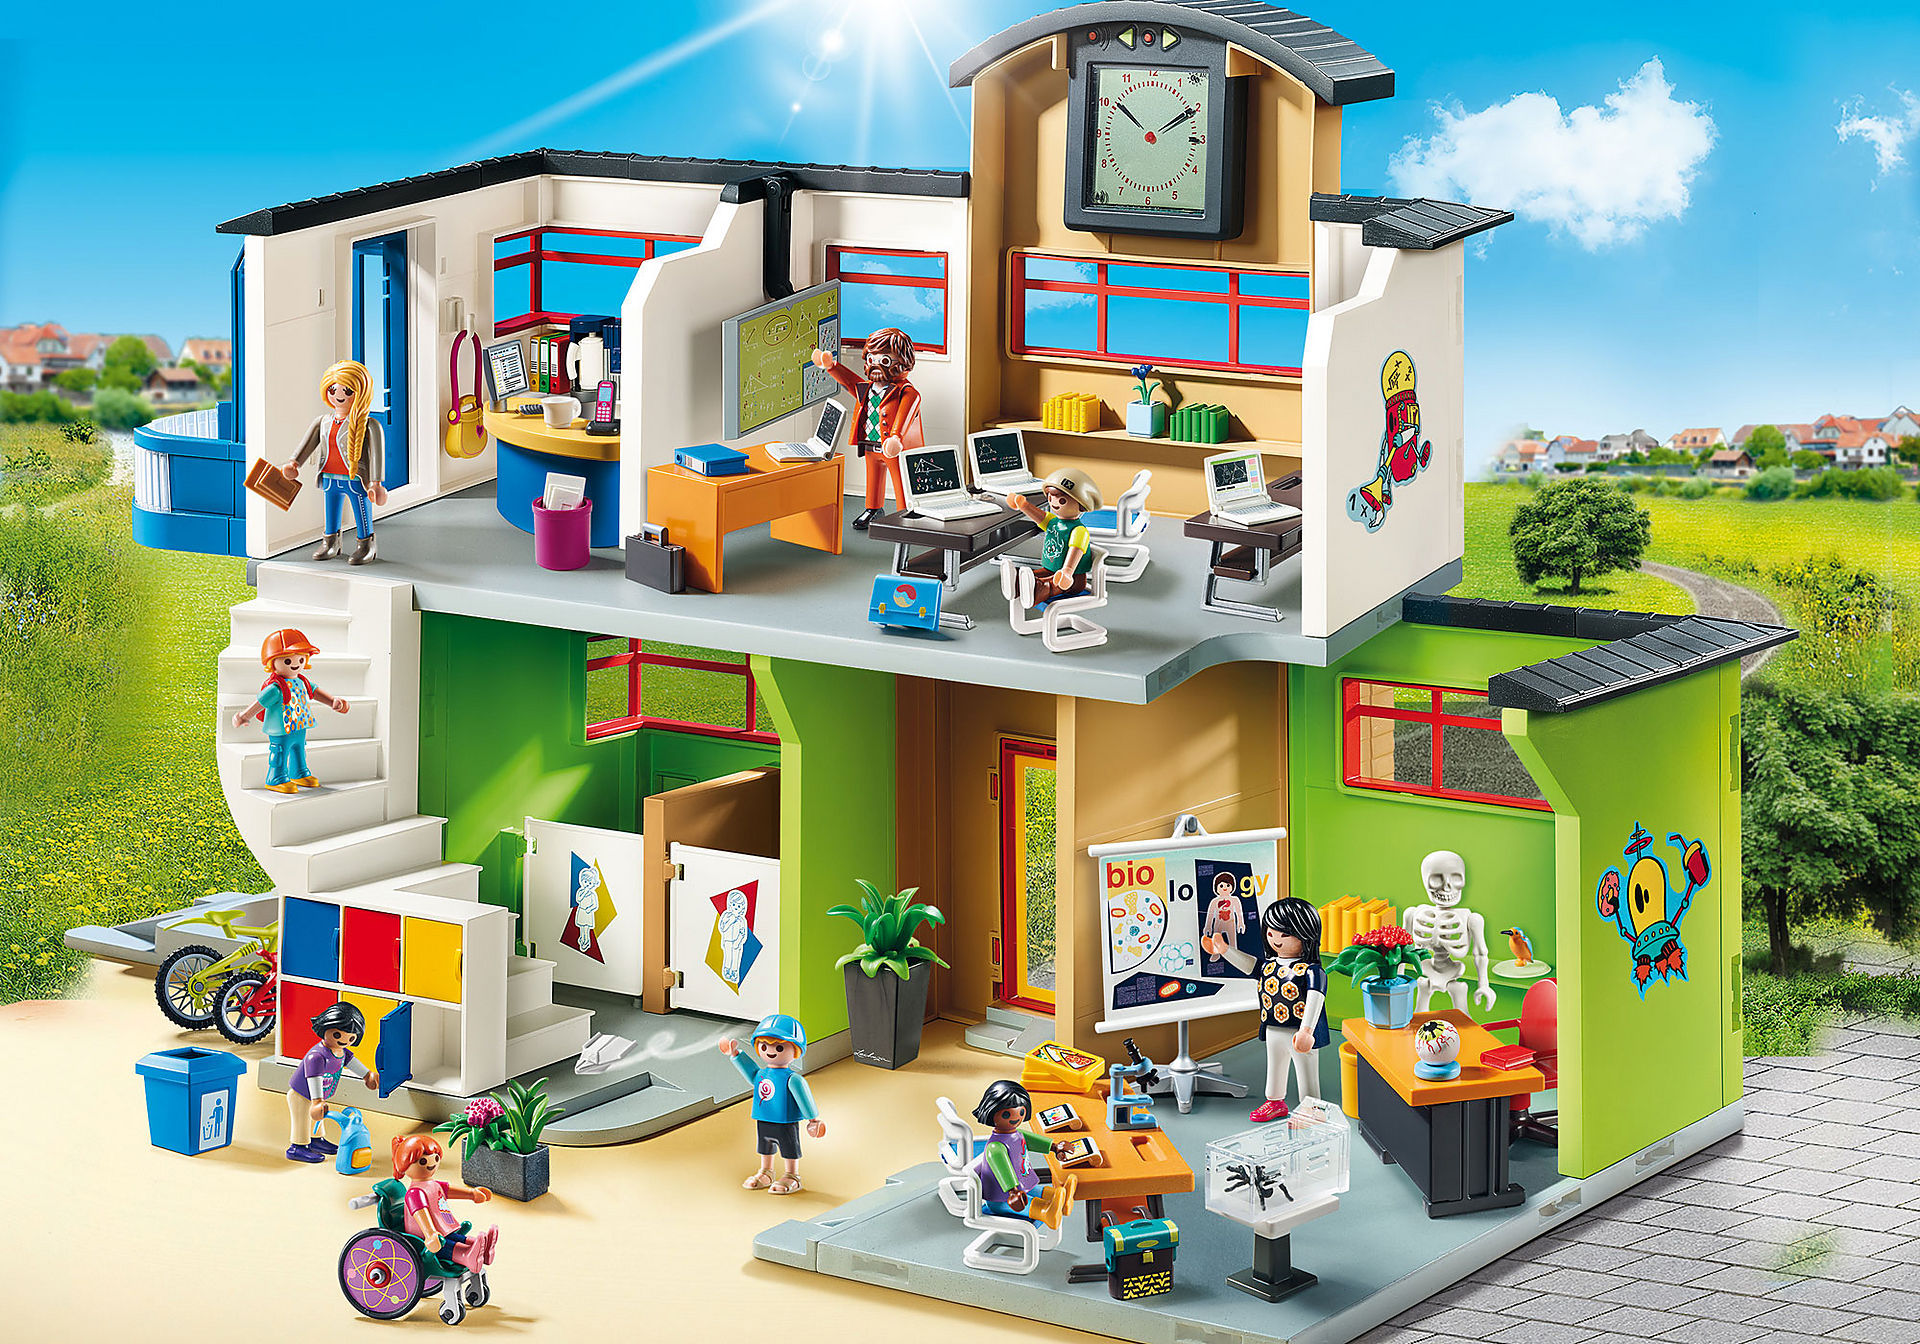 http://media.playmobil.com/i/playmobil/9453_product_detail/Επιπλωμένο Σχολικό Κτίριο